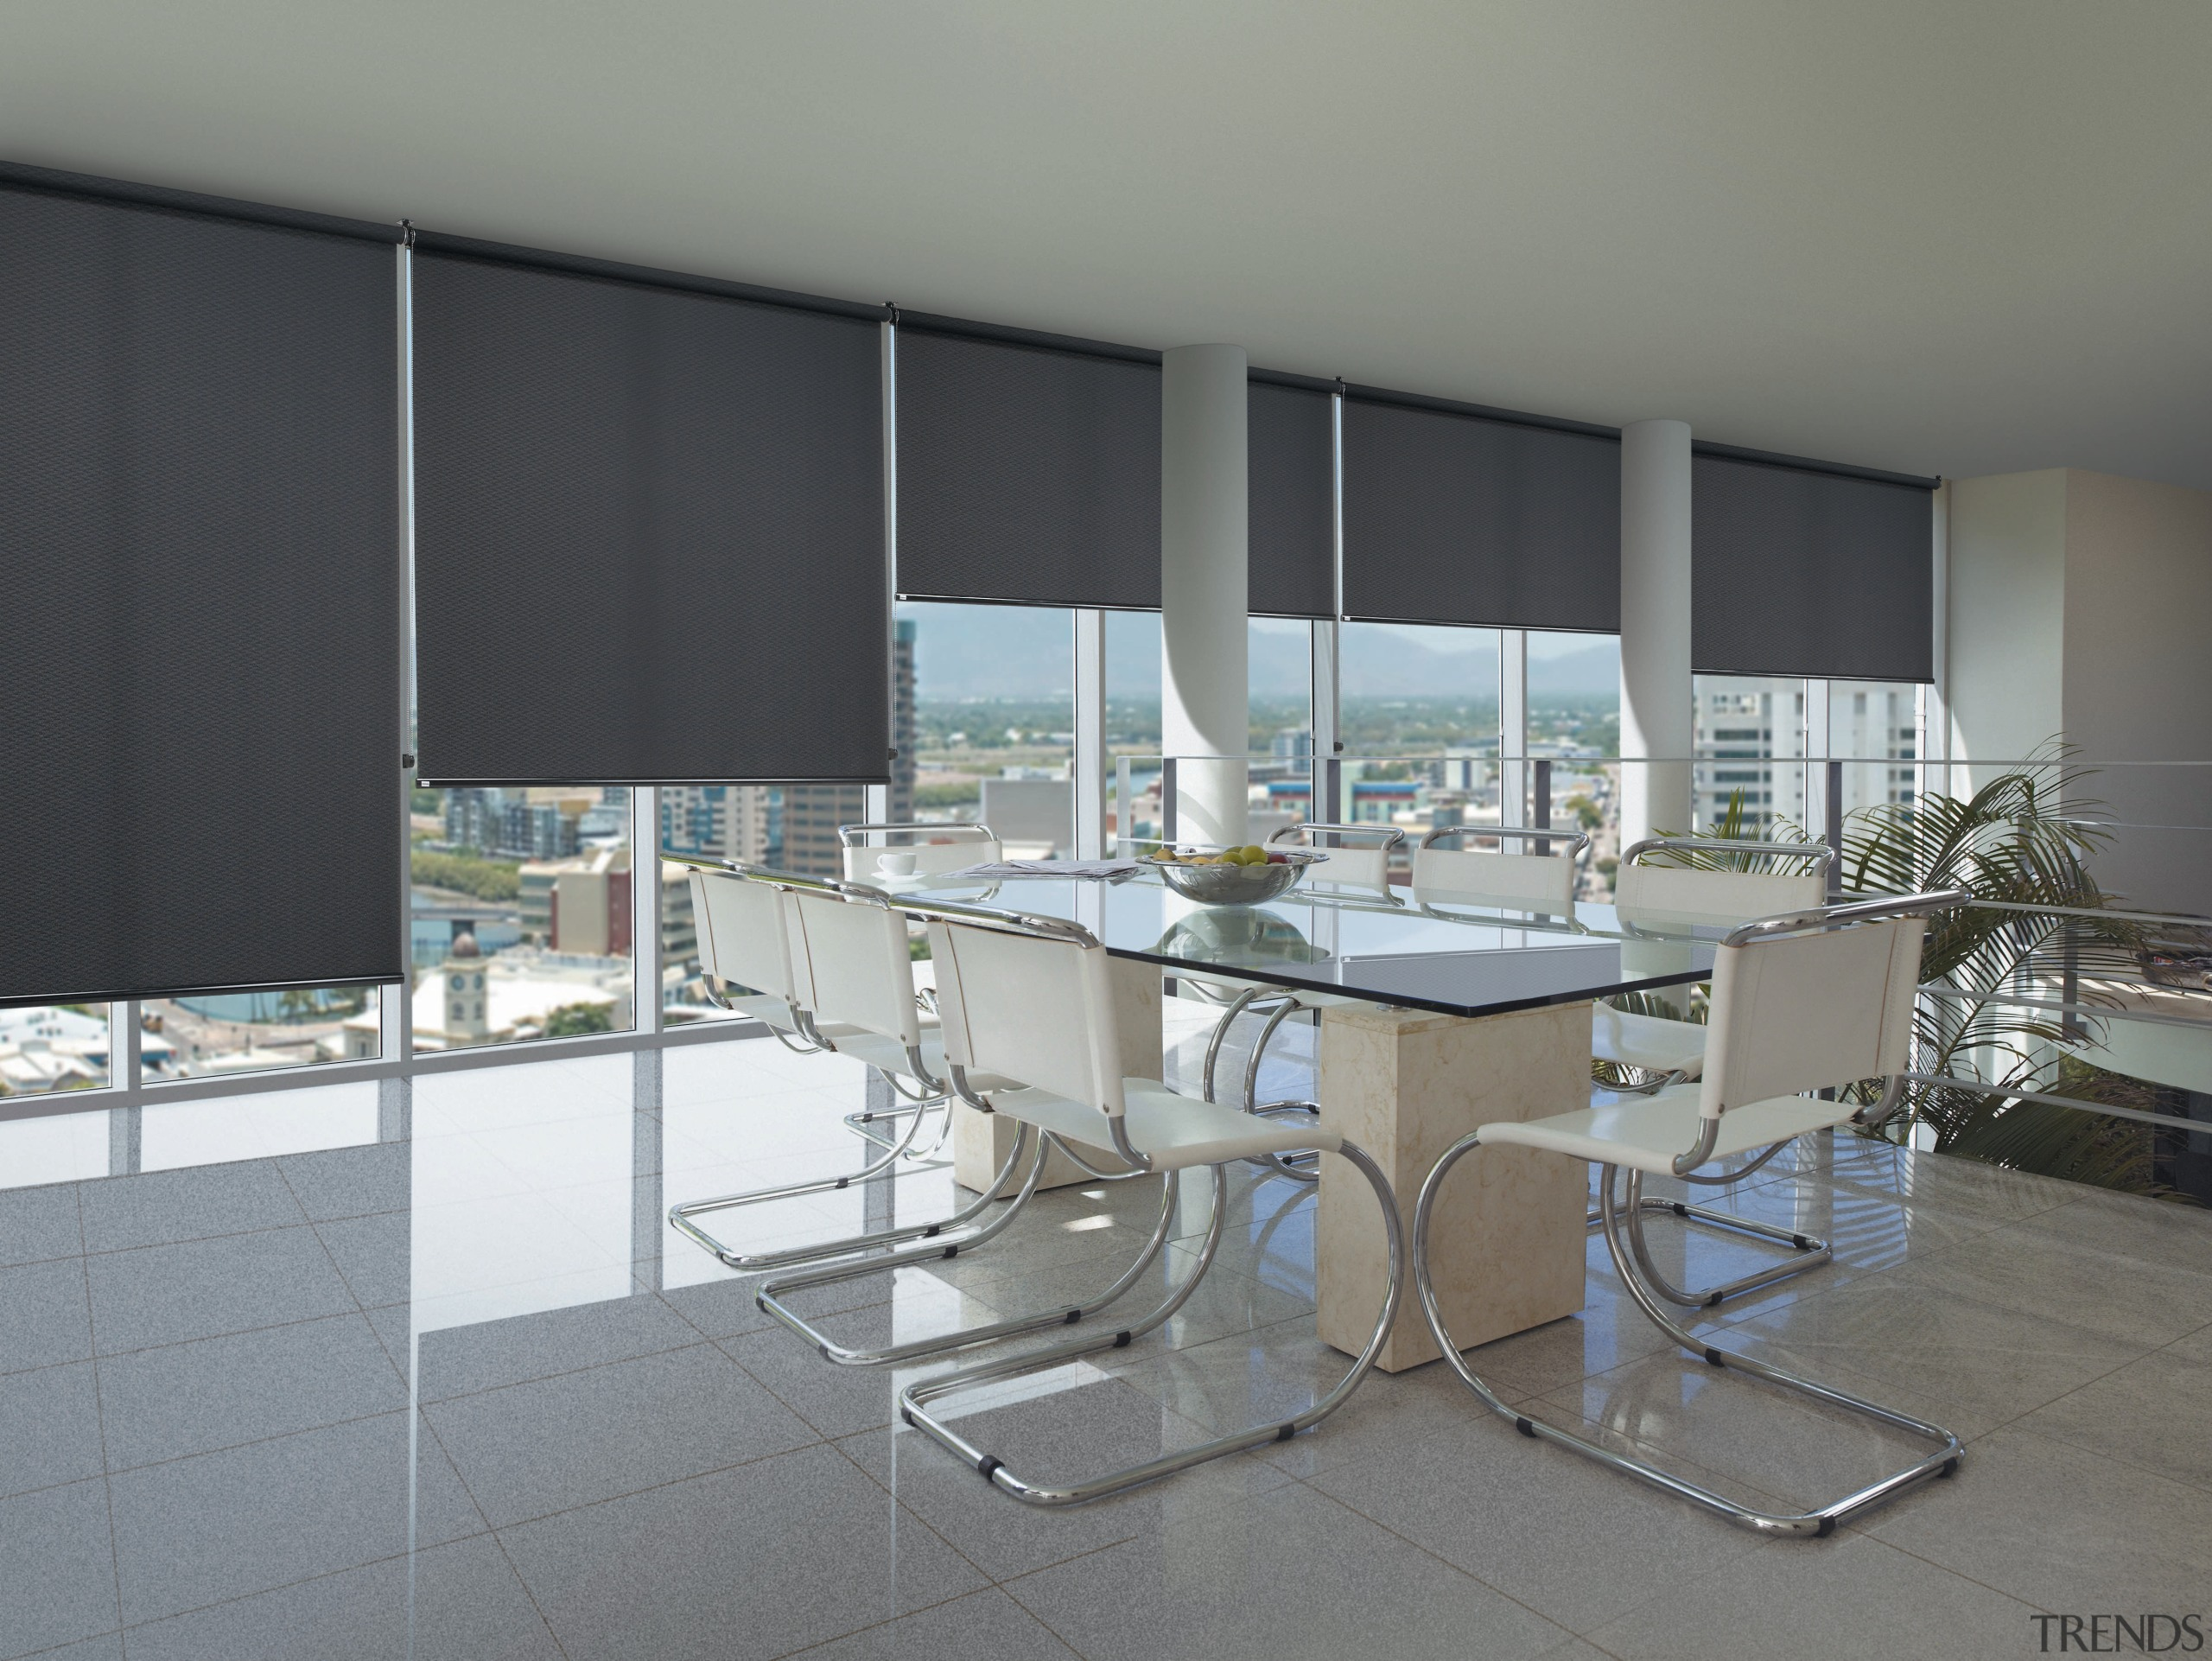 Interior view of an office area which features architecture, furniture, glass, interior design, real estate, table, window, window covering, gray